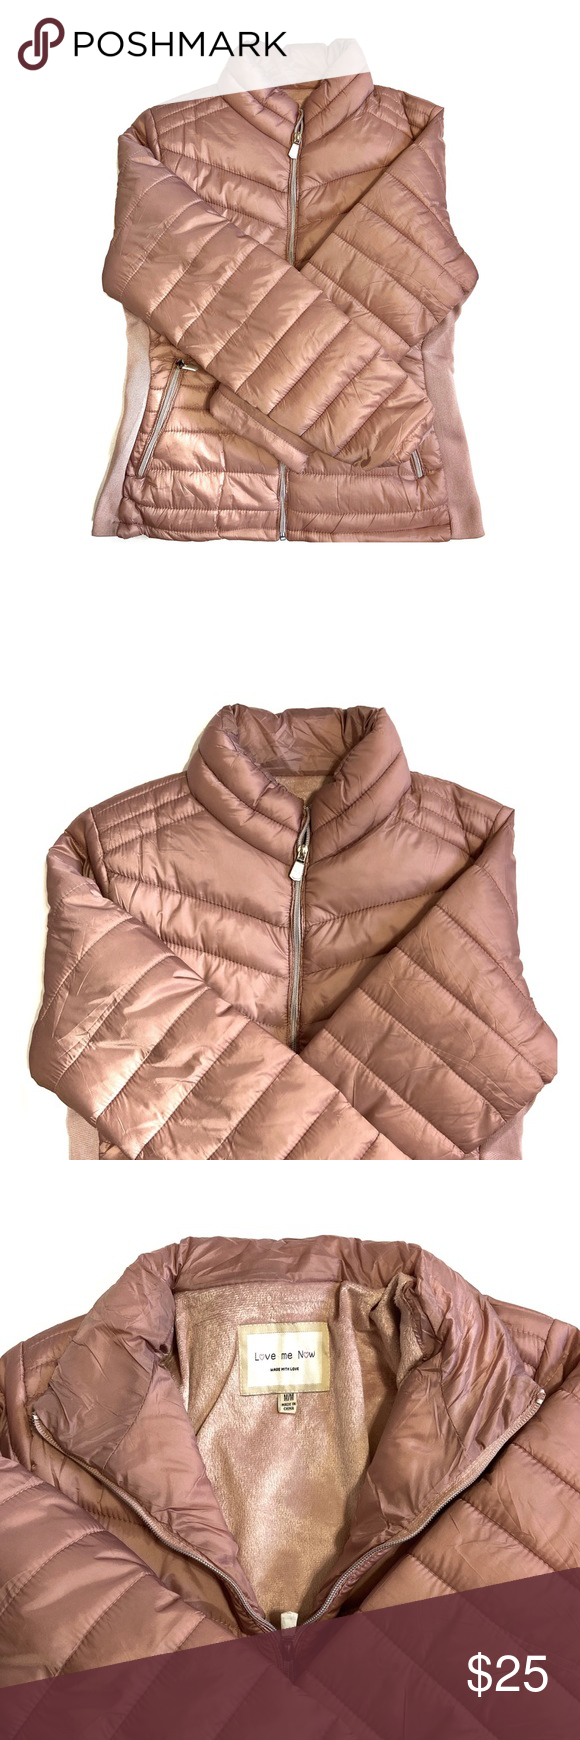 Dusty Rose Winter Puffer Jacket Dusty Rose Winter Puffer Jacket New With Tags Women S Size Medium Runs Small Winter Puffer Jackets Jackets Winter Outfits [ 1740 x 580 Pixel ]